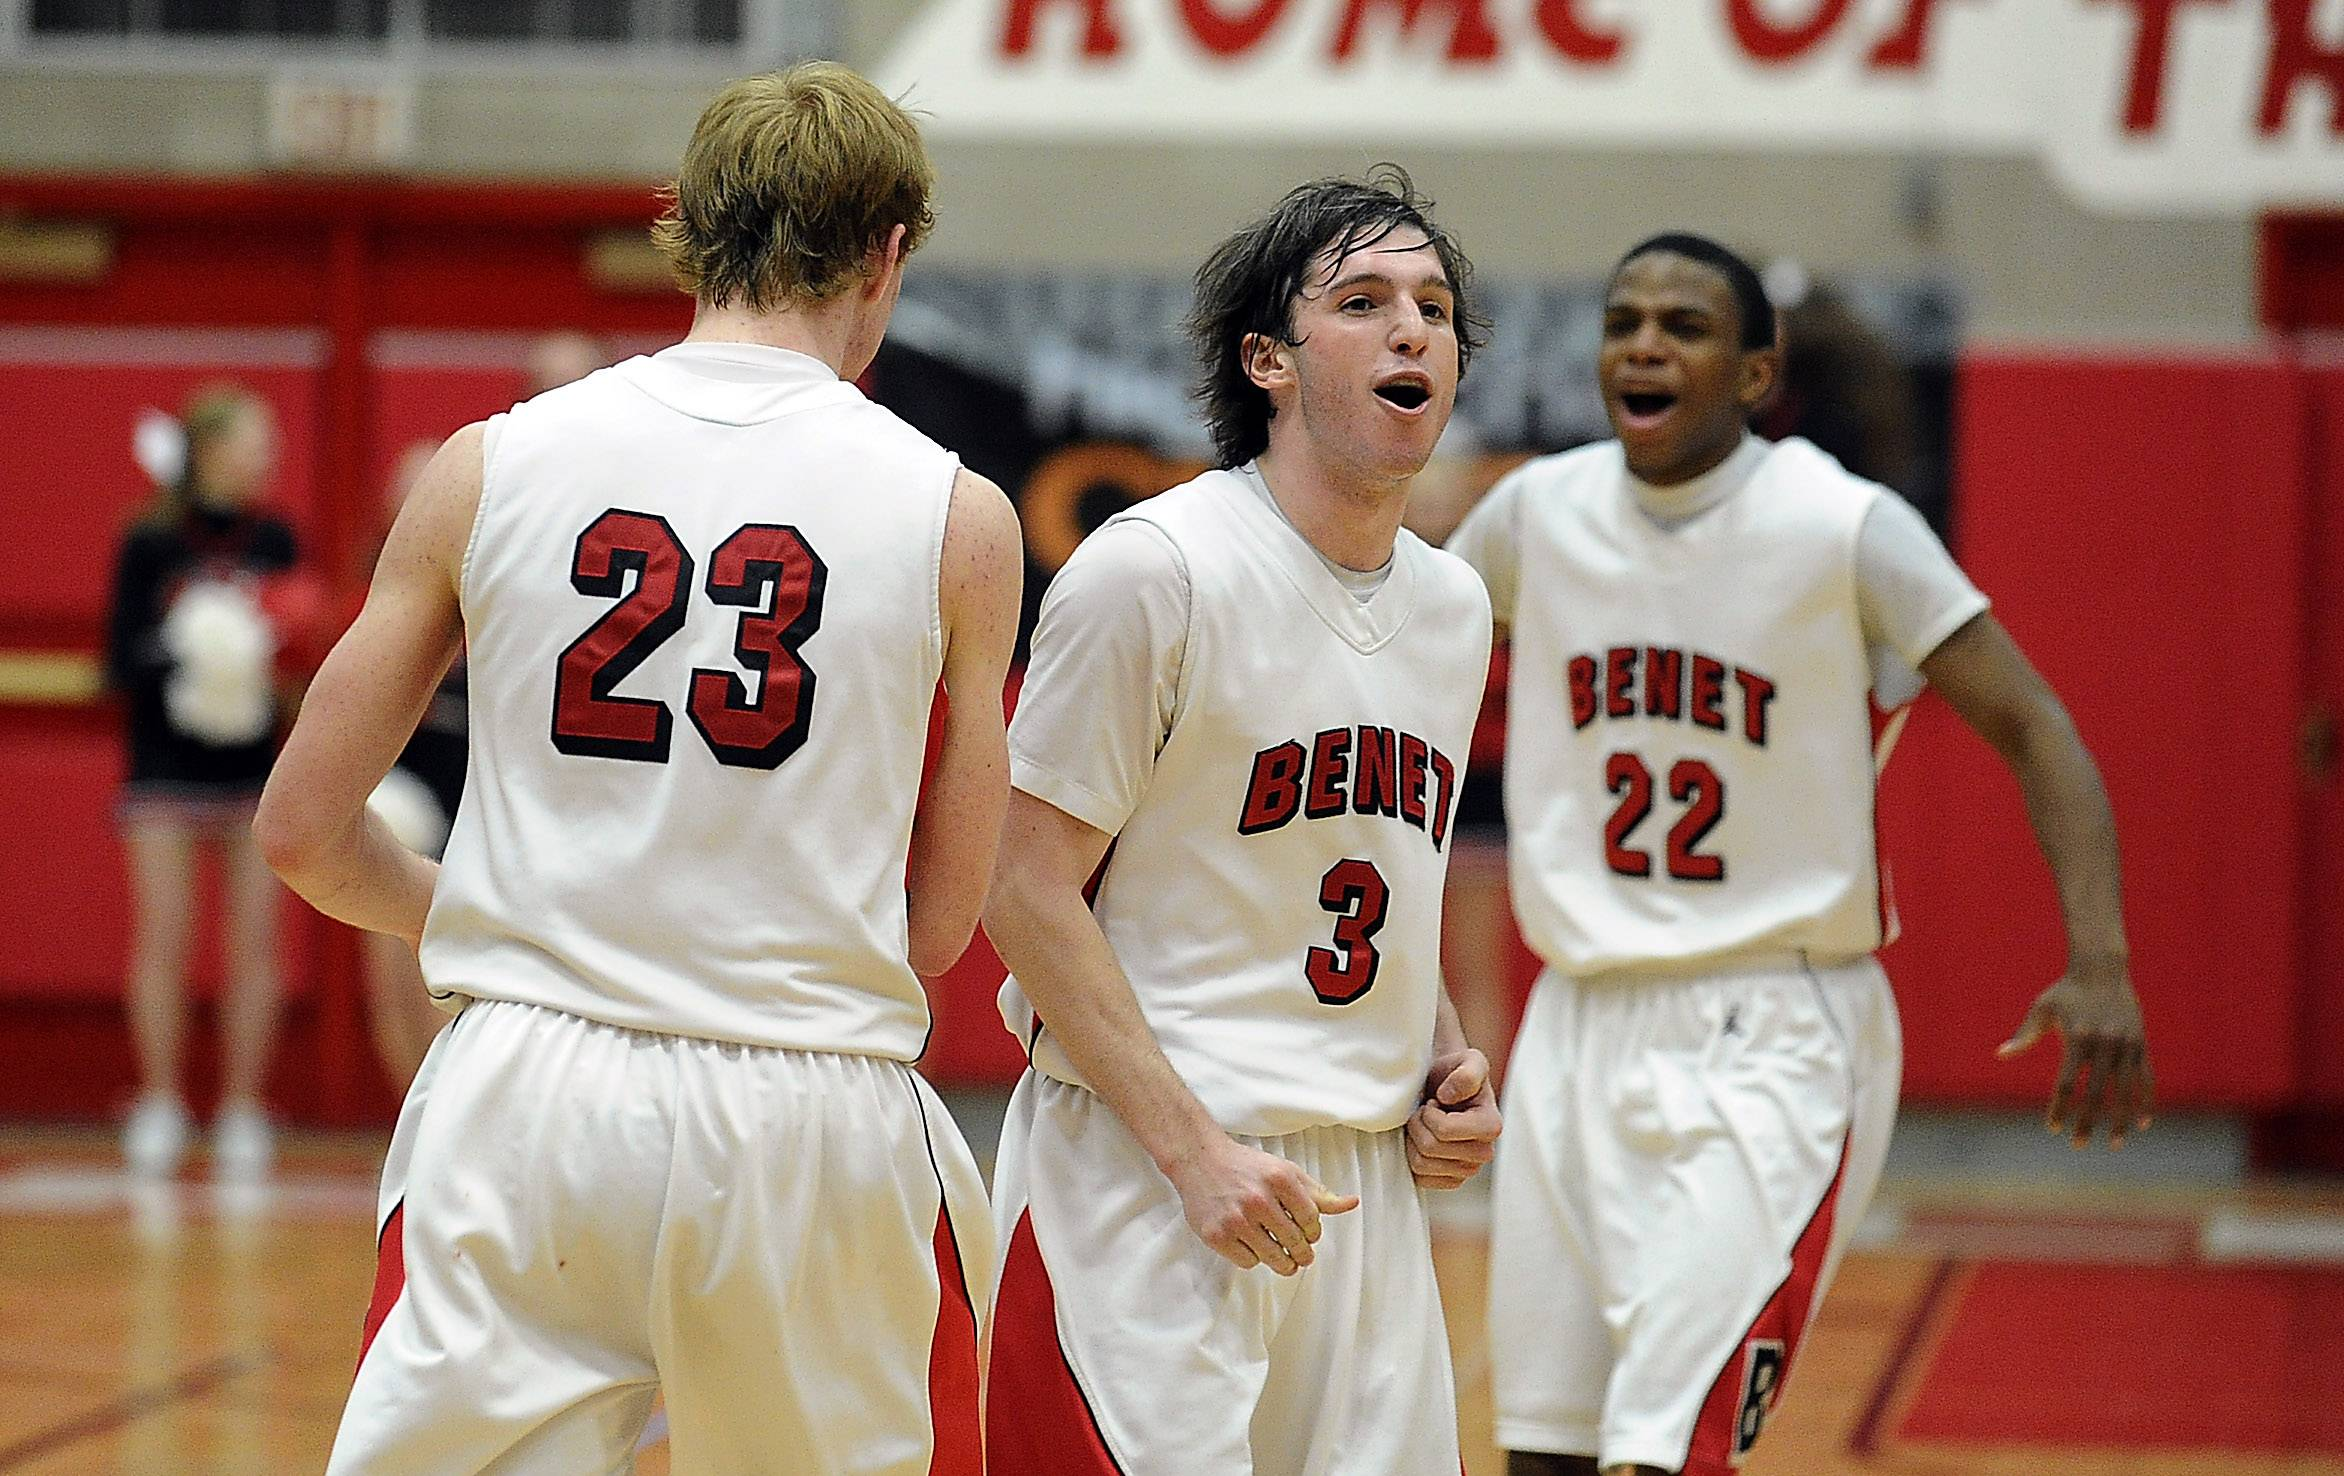 Benet Academy's Colin Bonnett, Collin Pellettieri and Josh Yesufu celebrate.